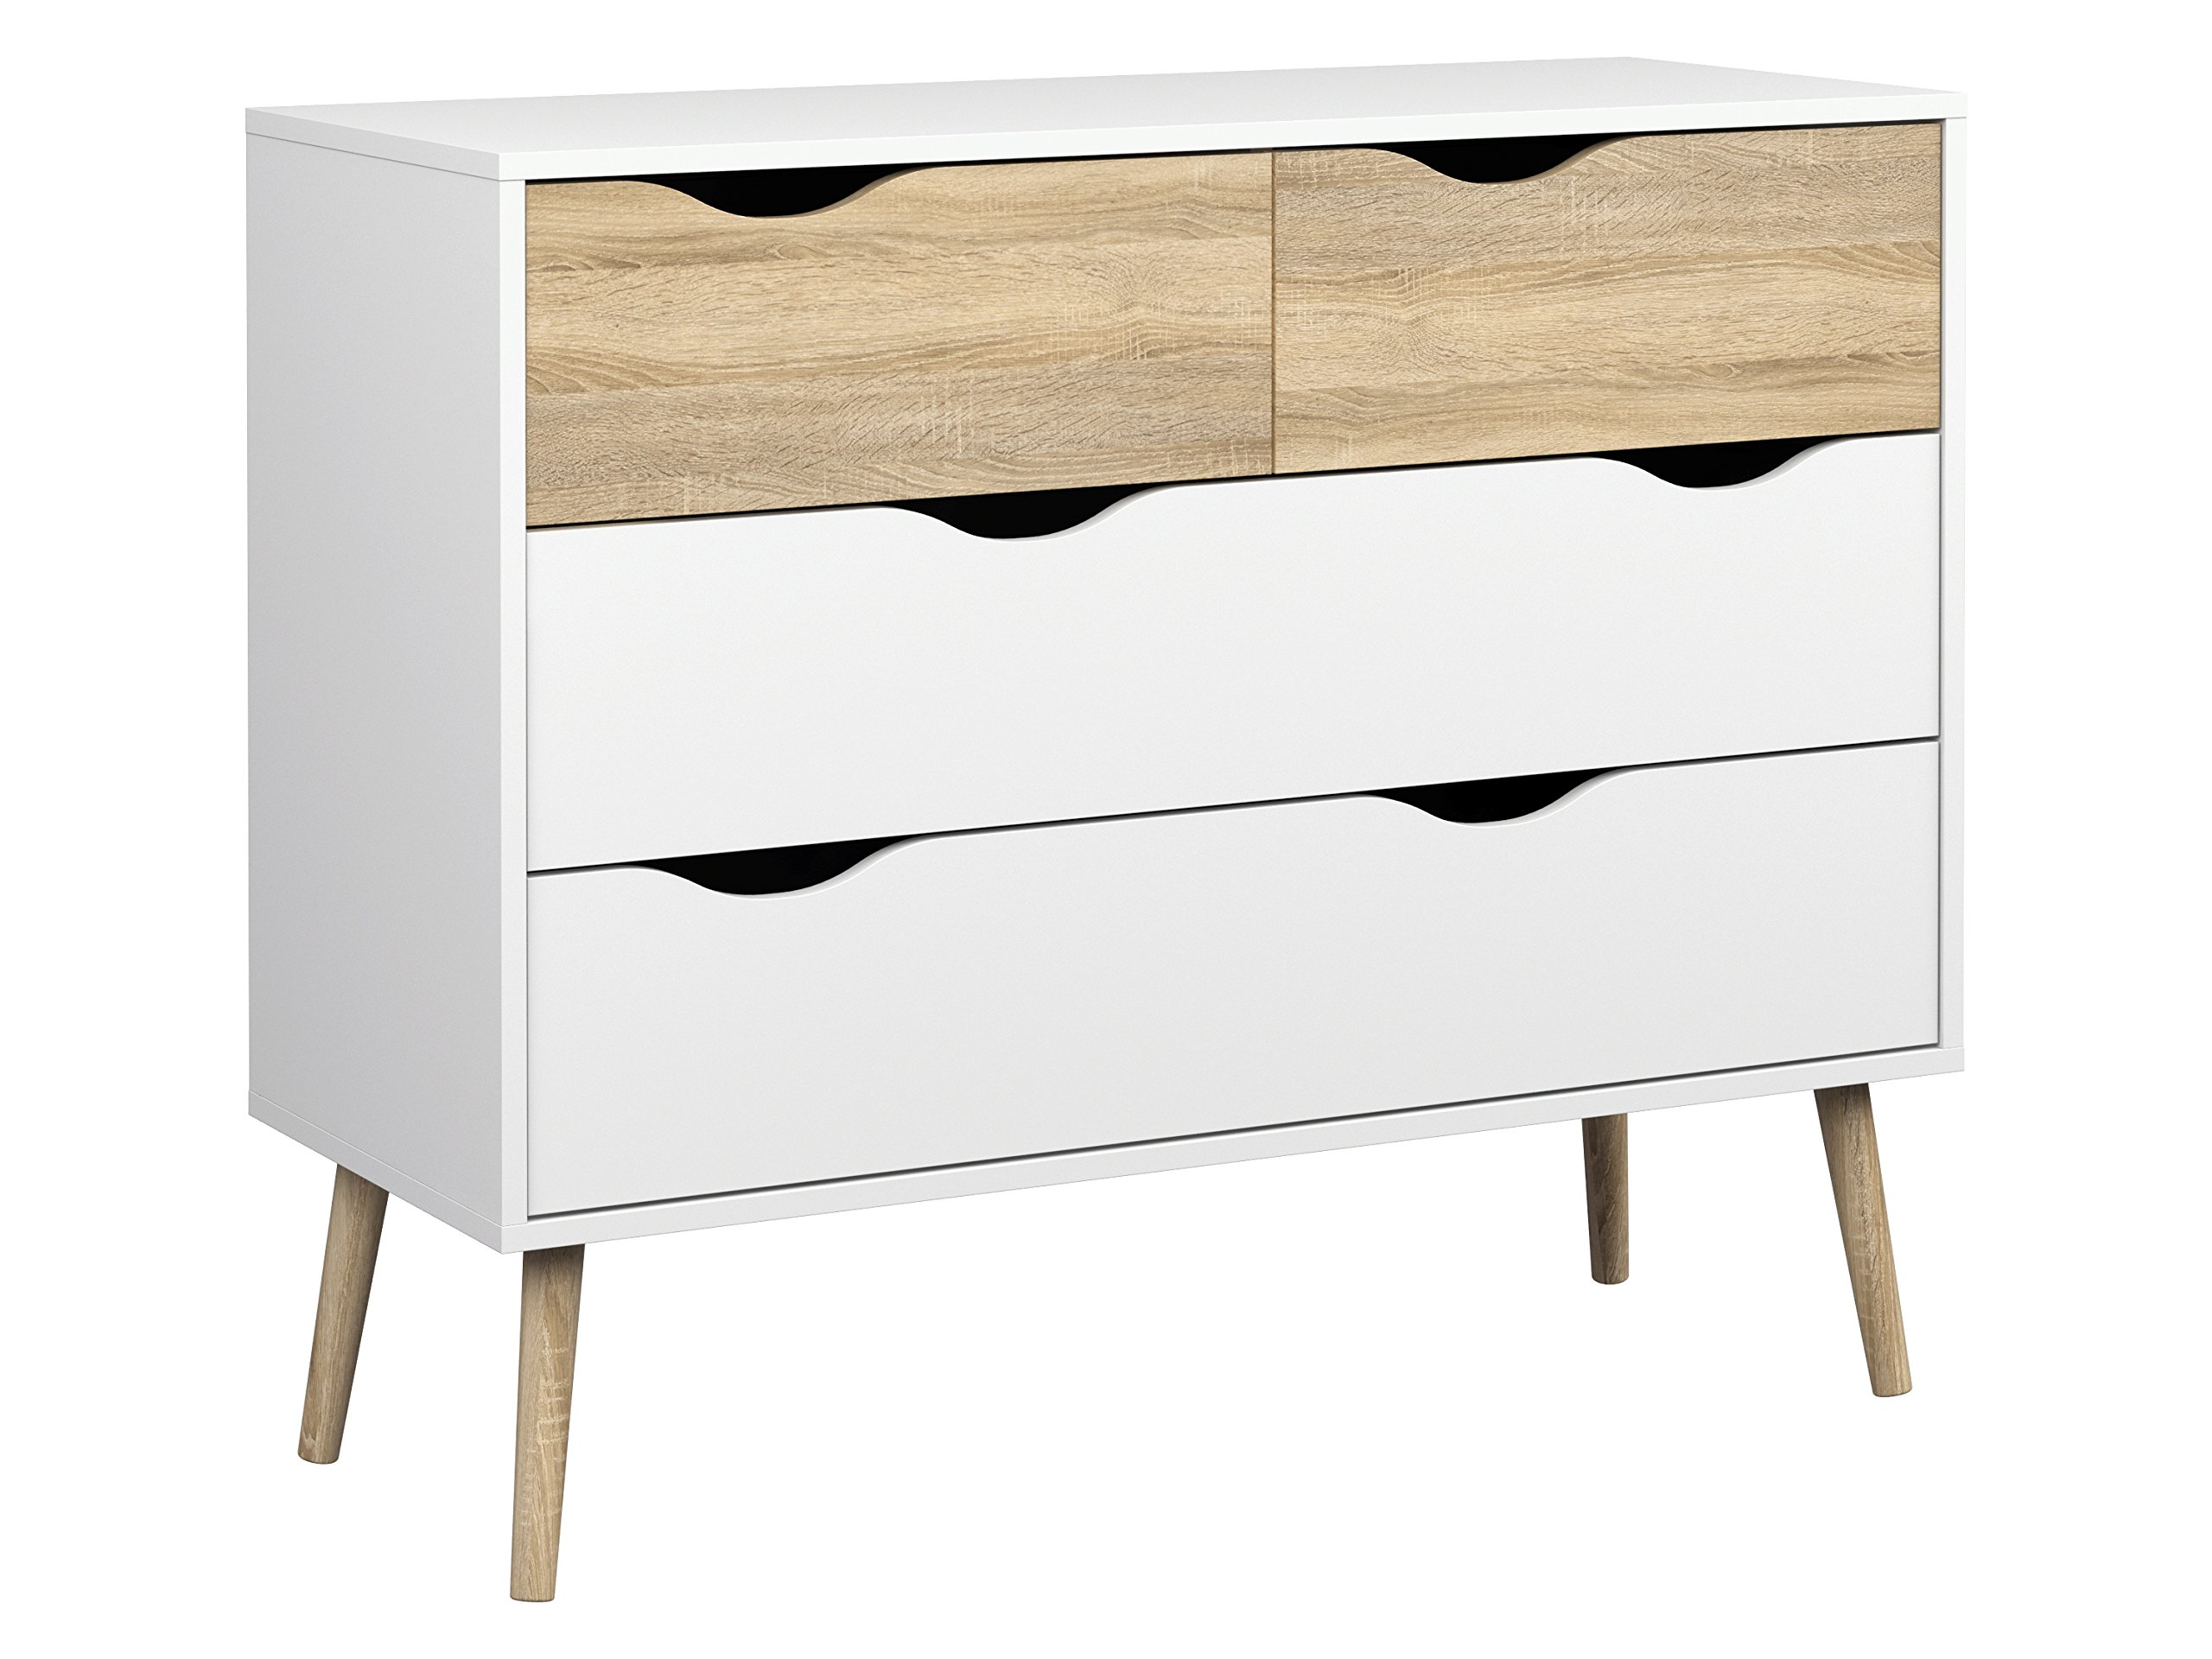 Tvilum Diana 4 Drawer Chest, White/Oak Structure - Practical shoe storage Accommodates 18-21 pairs of shoes Made in denmark - dressers-bedroom-furniture, bedroom-furniture, bedroom - 81qaA53iU L -